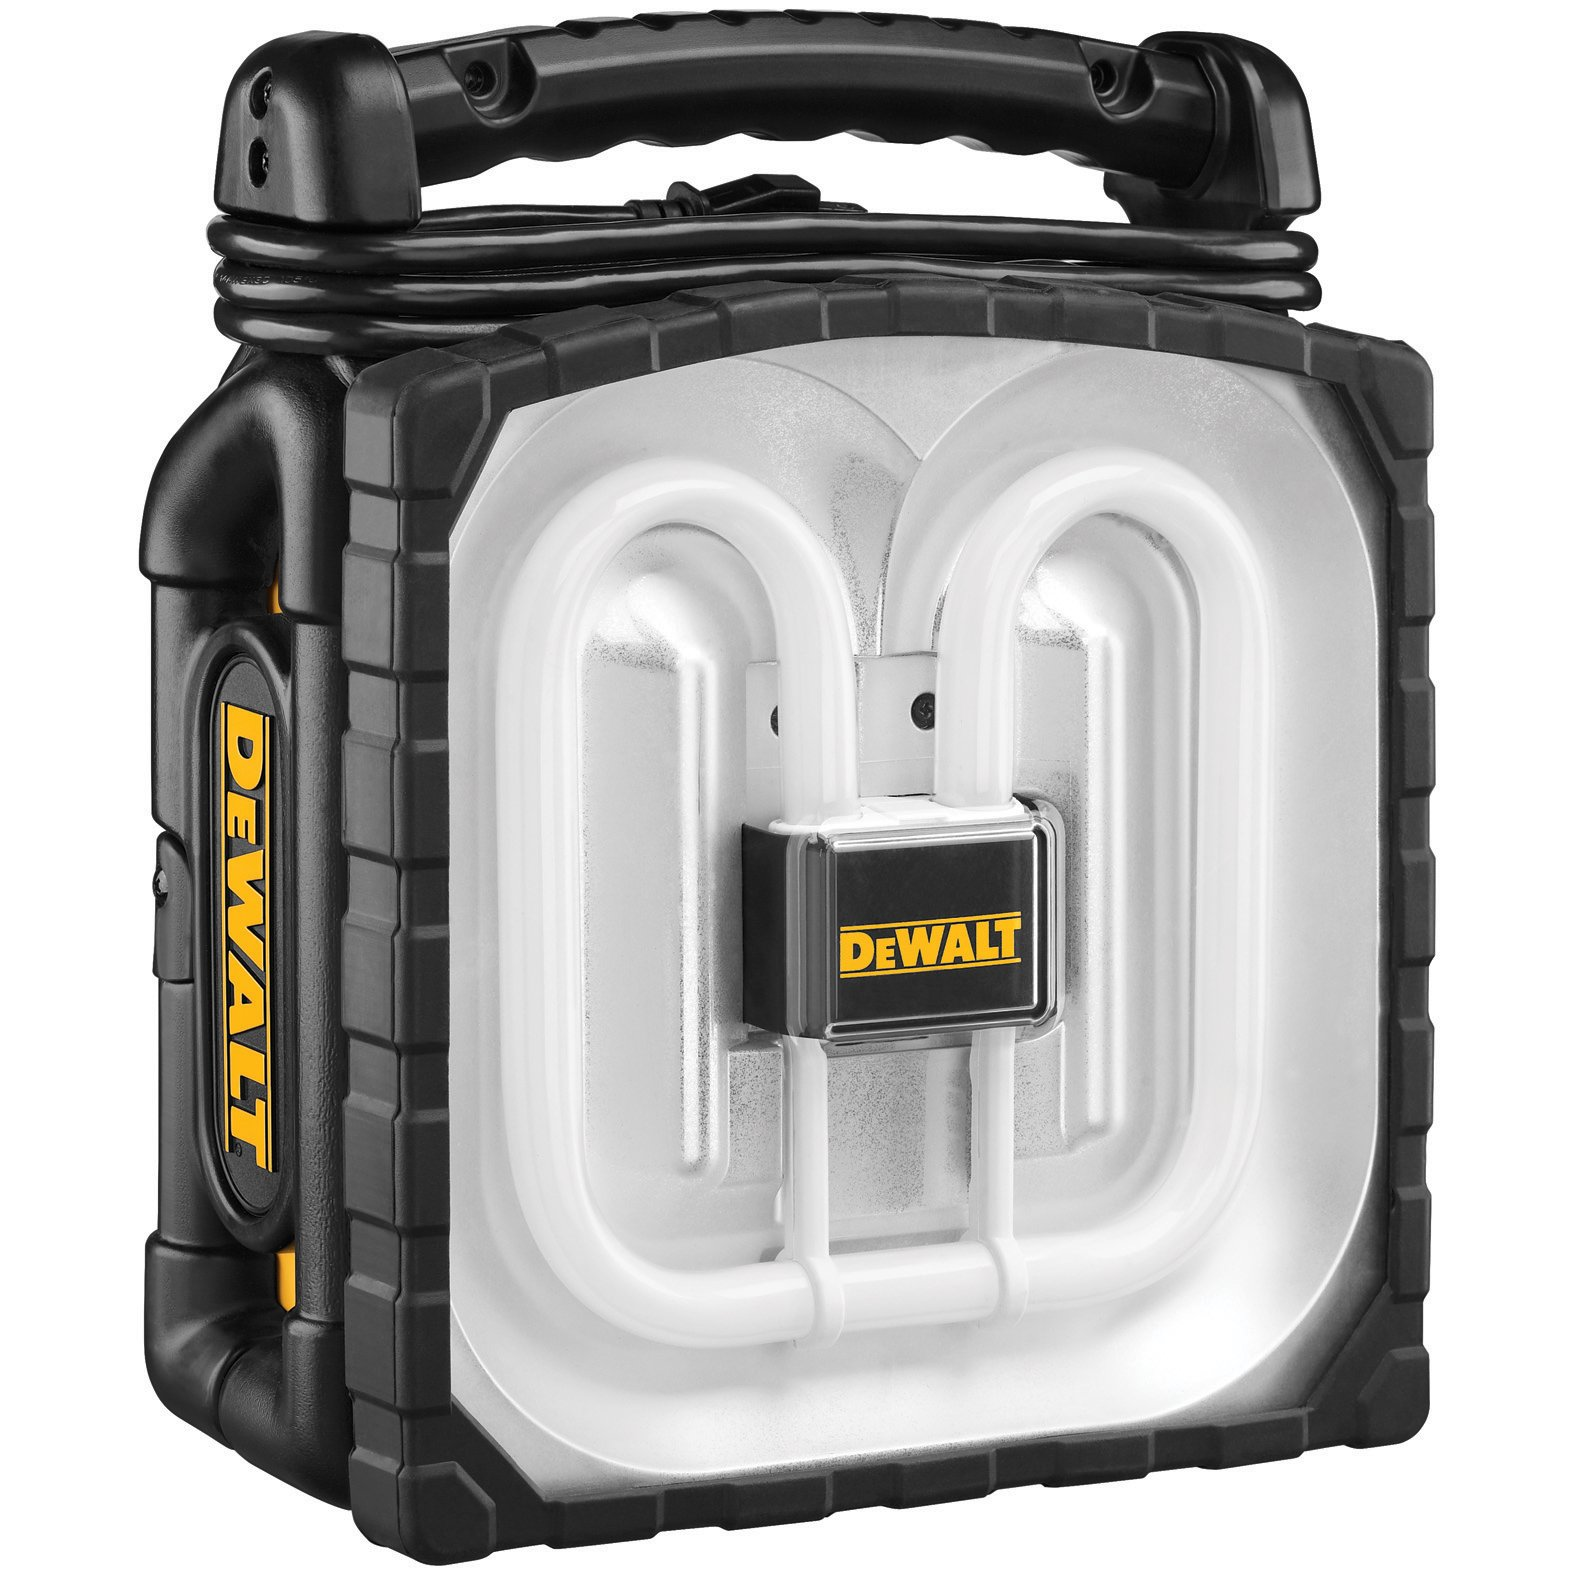 DEWALT DC020 Cordless/Corded Worklight